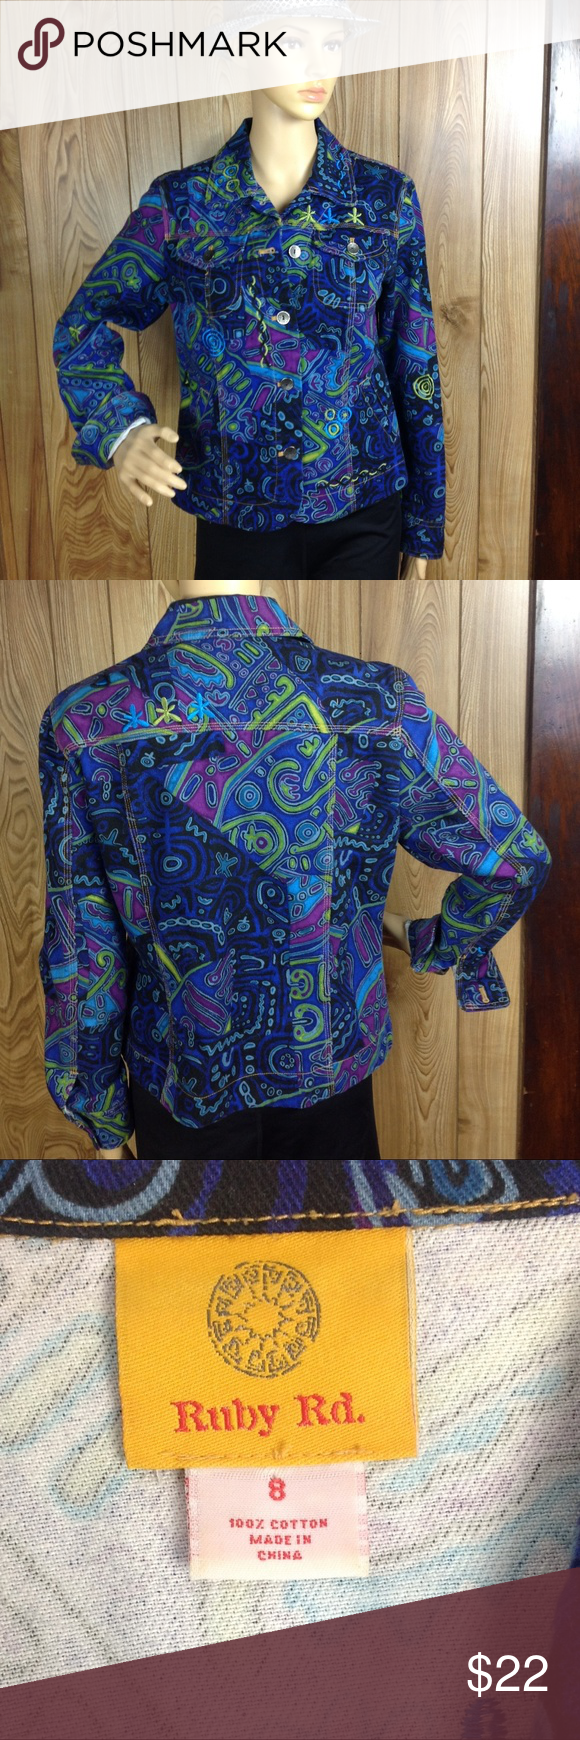 Ruby Rd Multi Colored Print Denim Light Jacket 8